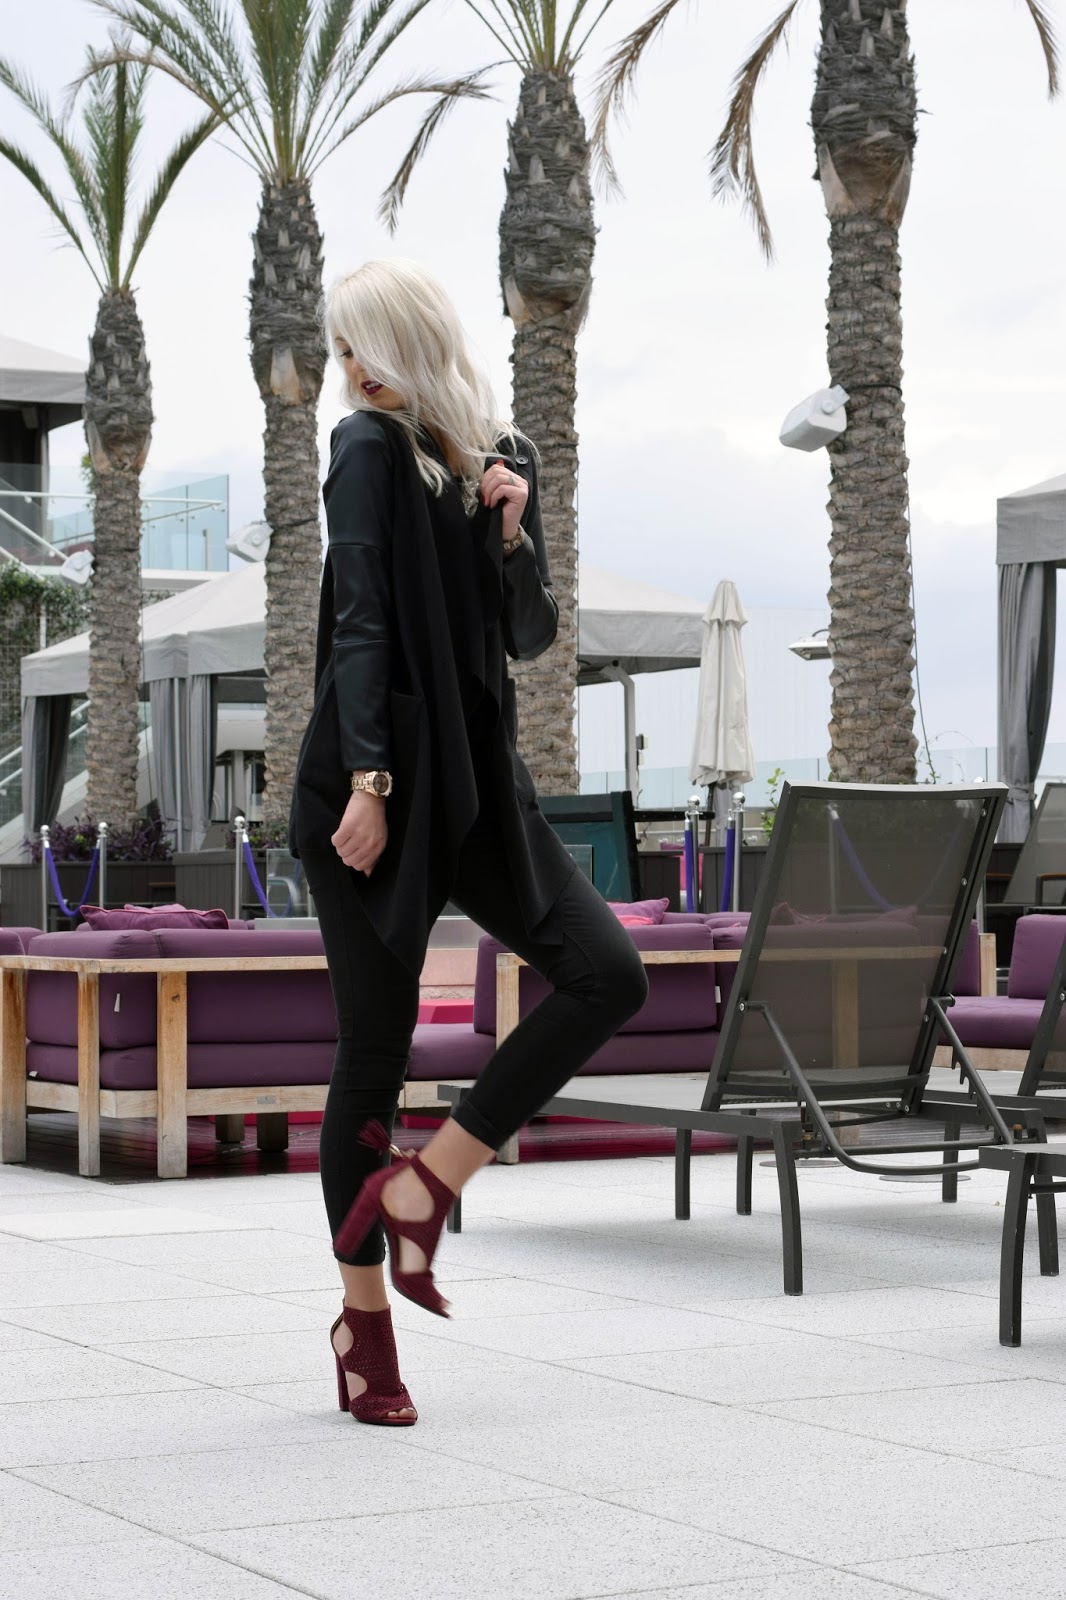 Shushop, heels, all black look, burgundy heels